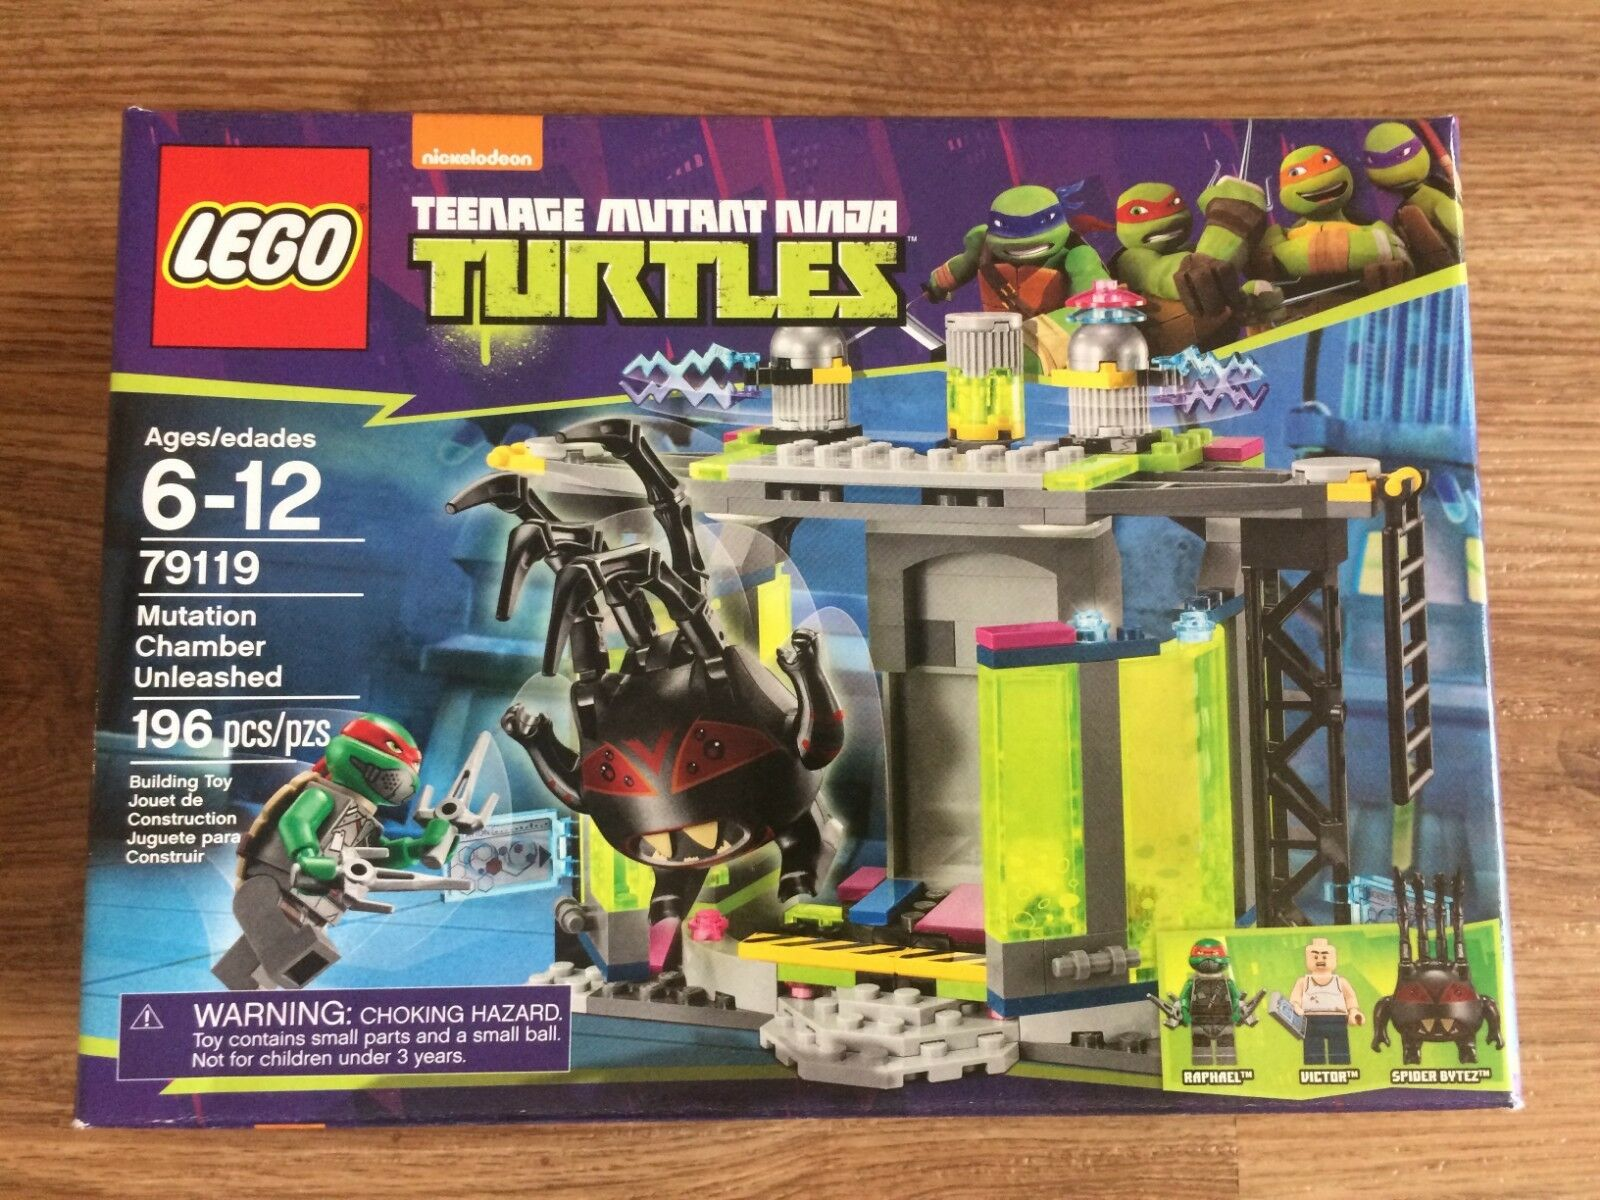 LEGO 79119 Teenage Mutant Ninja Turtles Mutation Chamber Unleashed Brand New